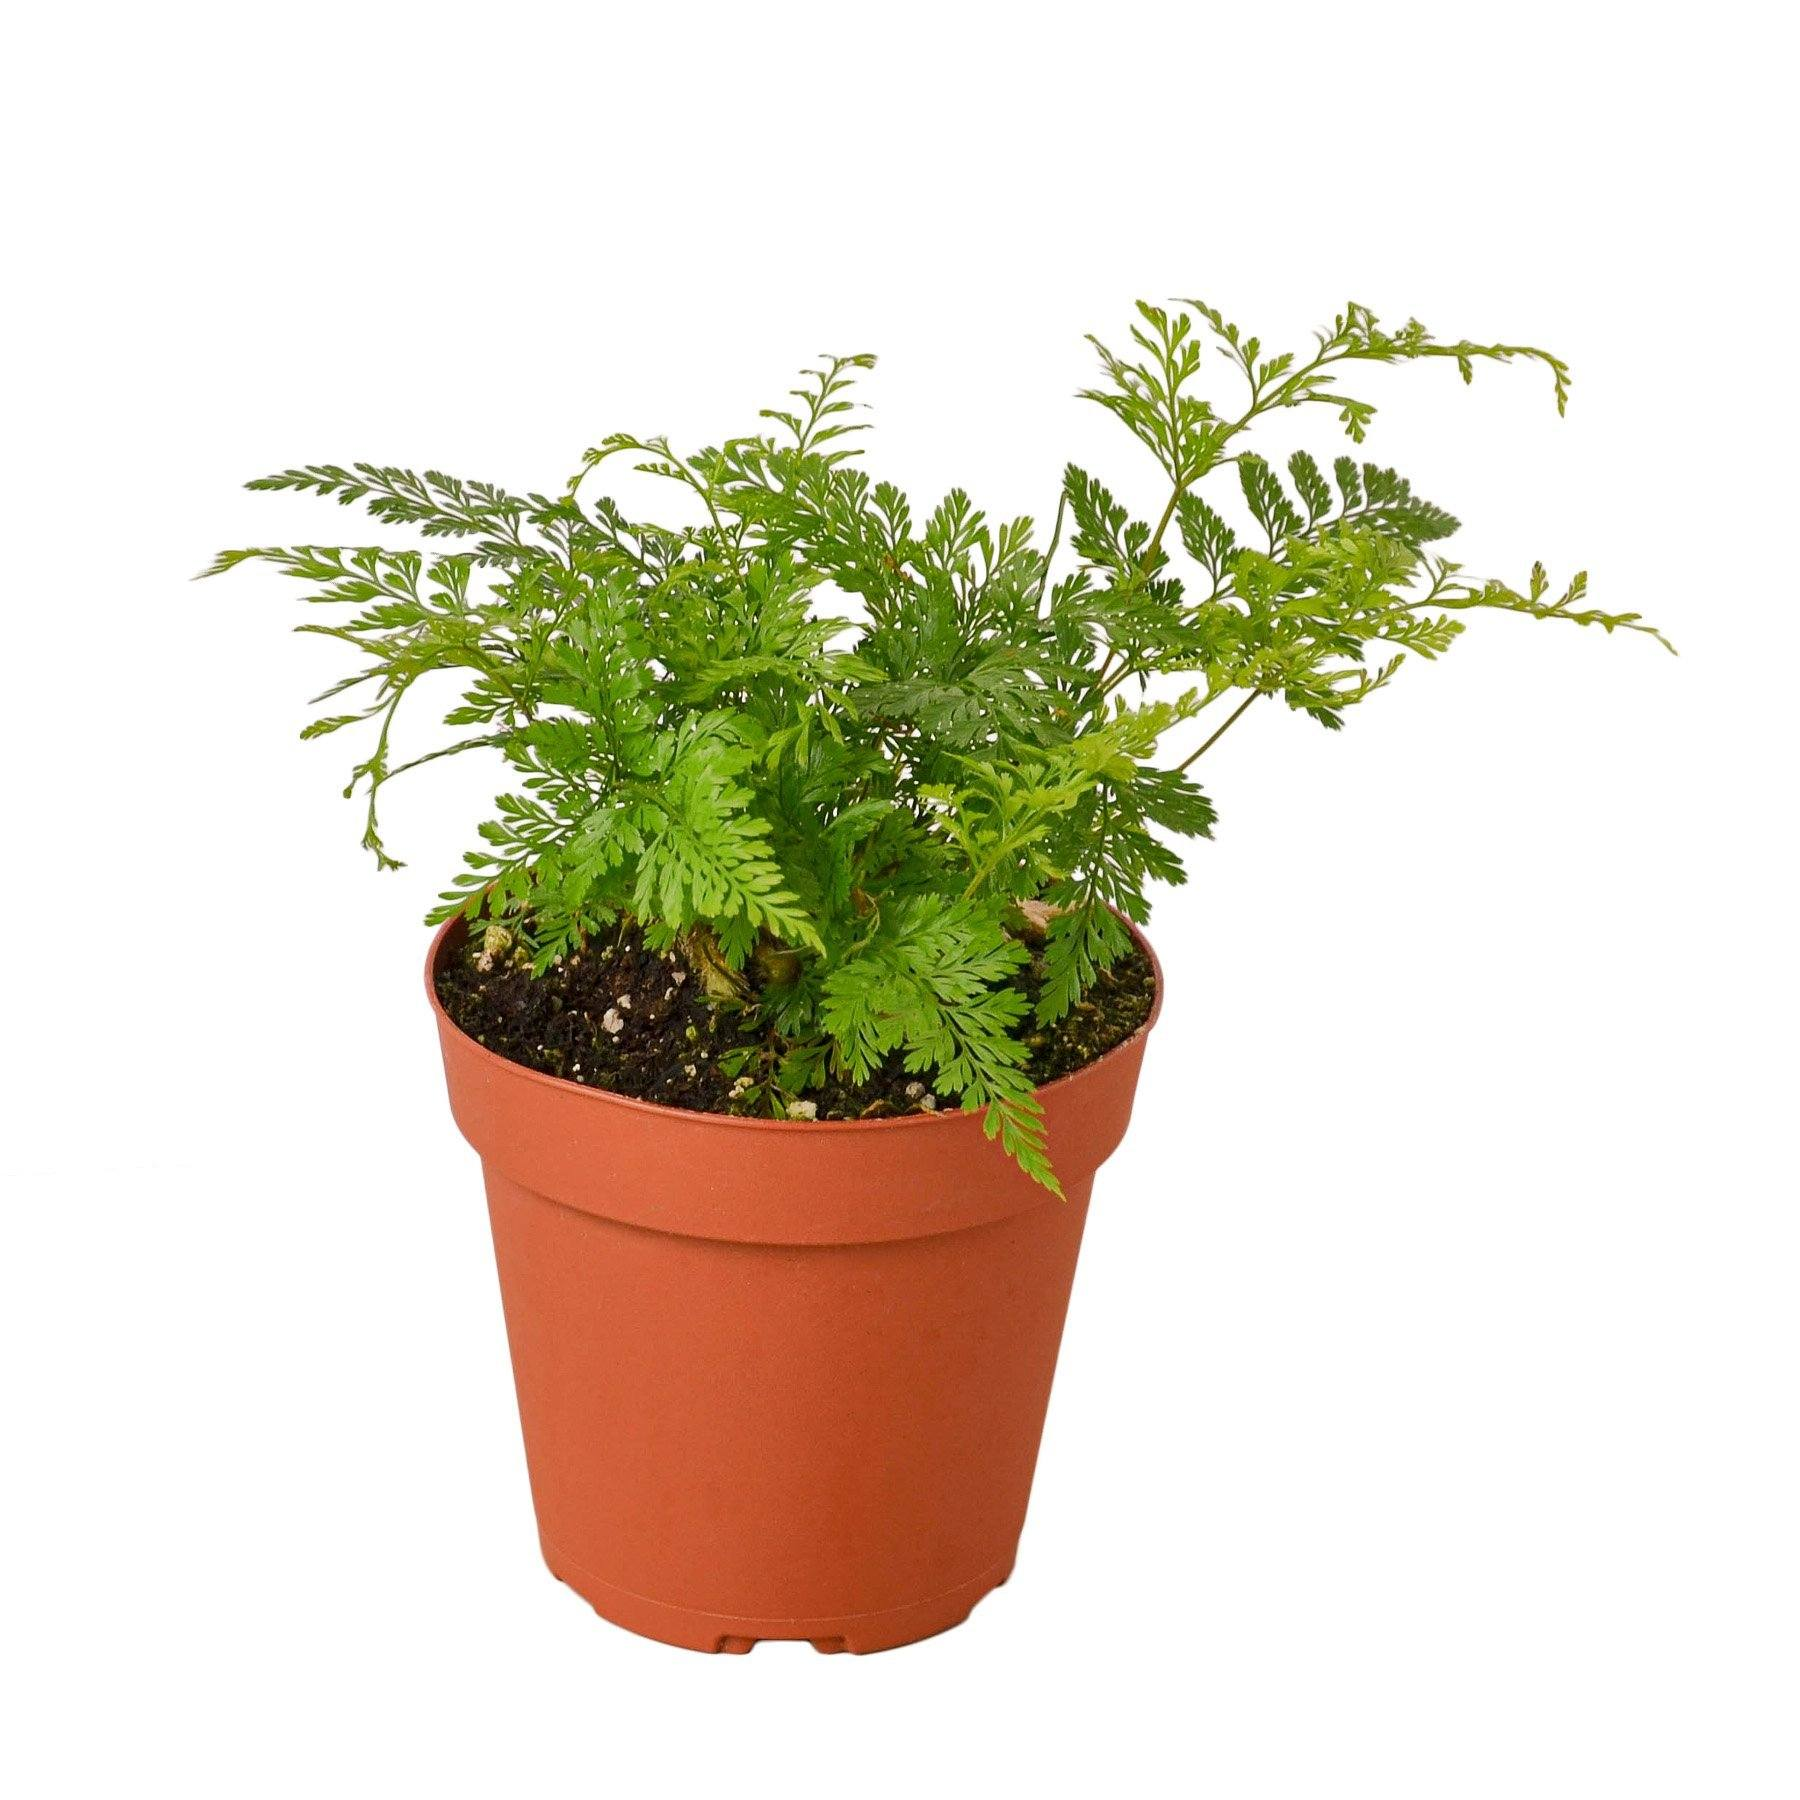 Rabbit's Foot Fern Houseplant-SproutSouth-Indoor Plants